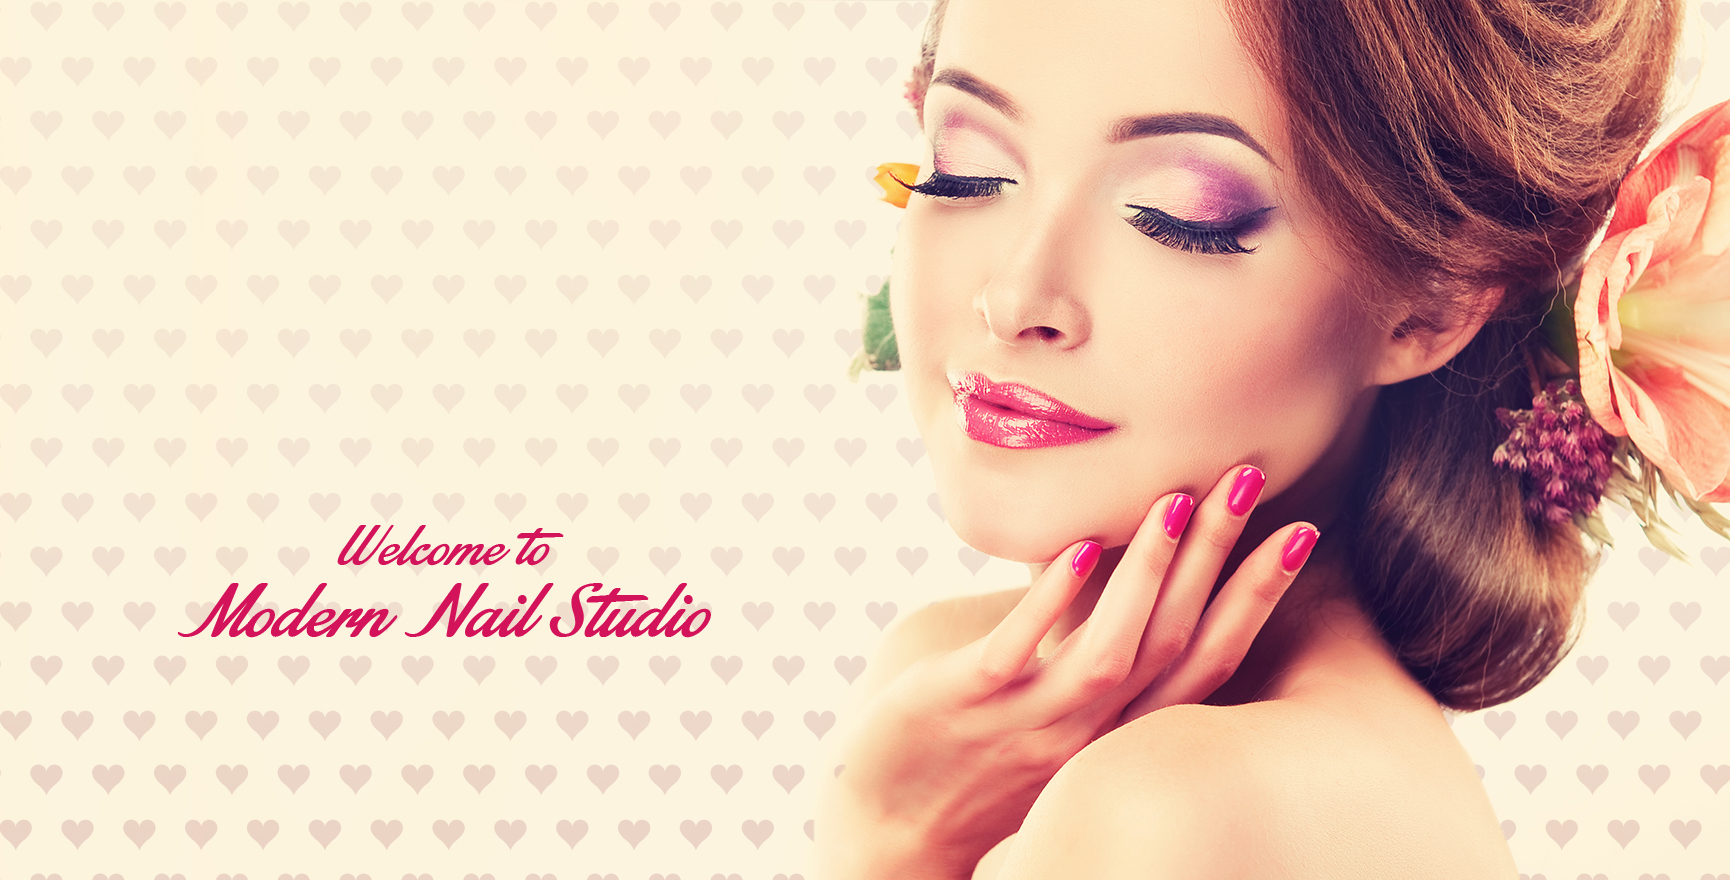 Welcome To Modern Nail Studio Conveniently Located In Tysons Corner Center Mall